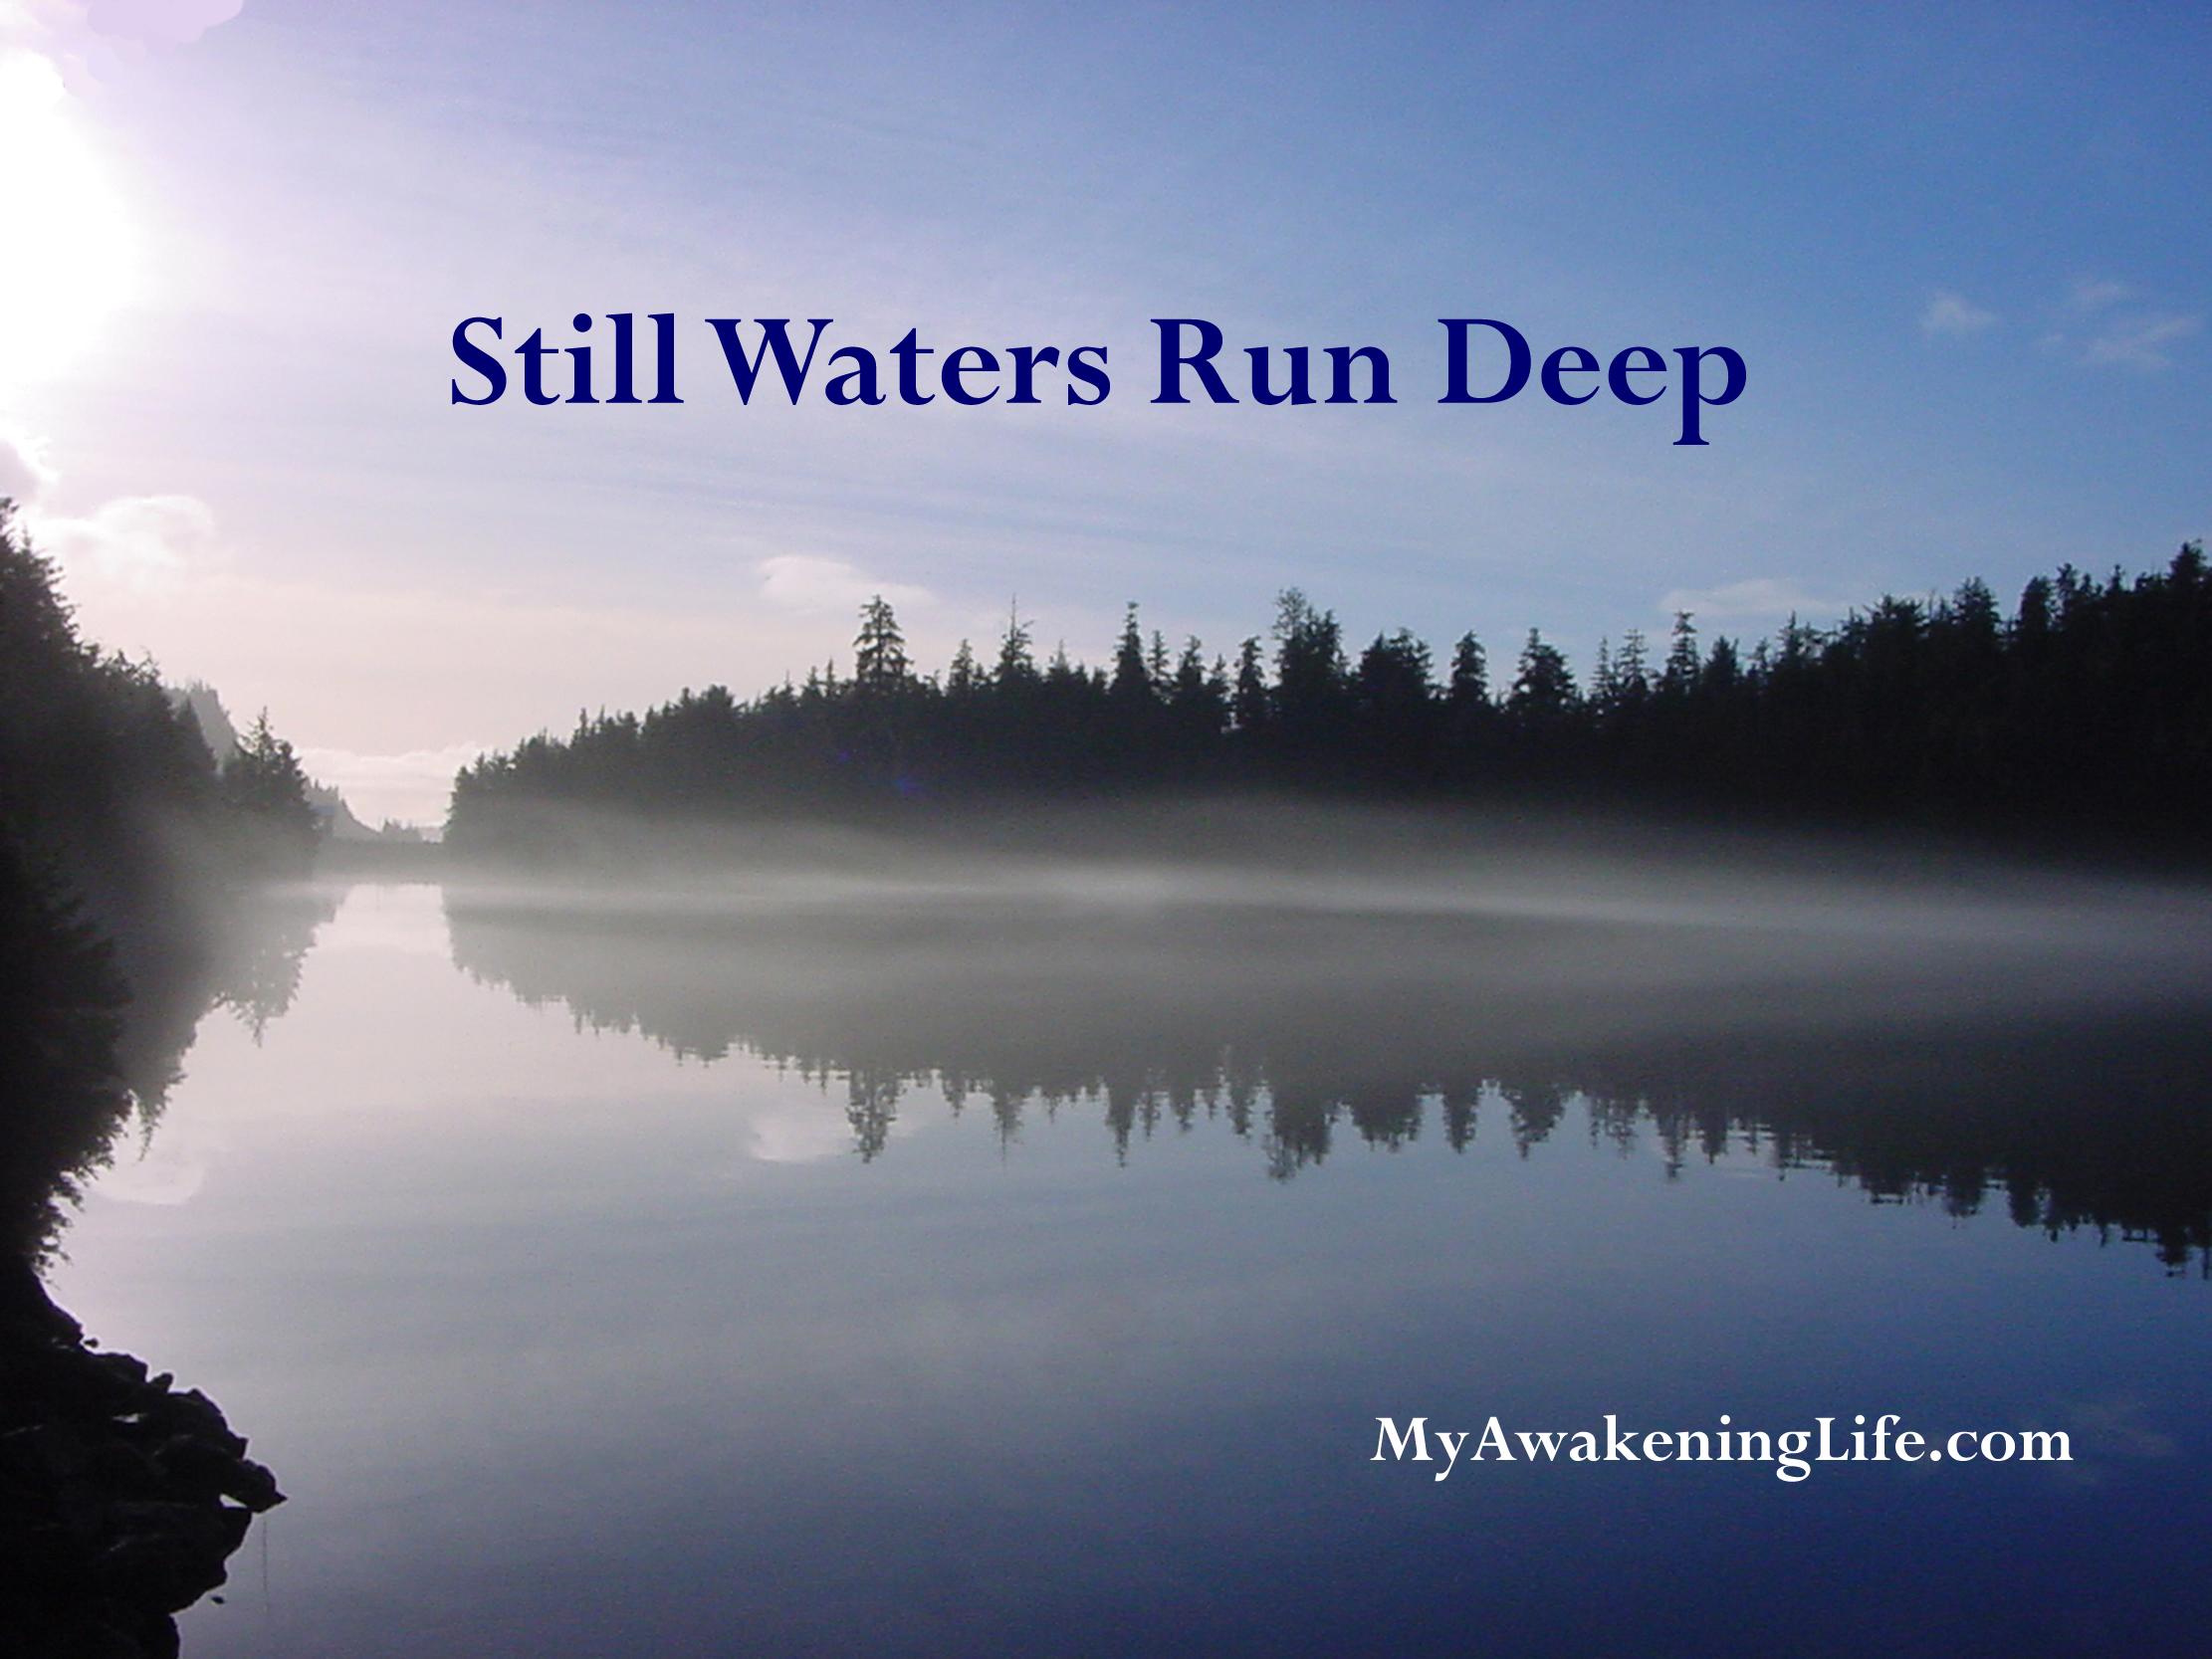 still water run deep Essays - largest database of quality sample essays and research papers on still waters run deep essay.